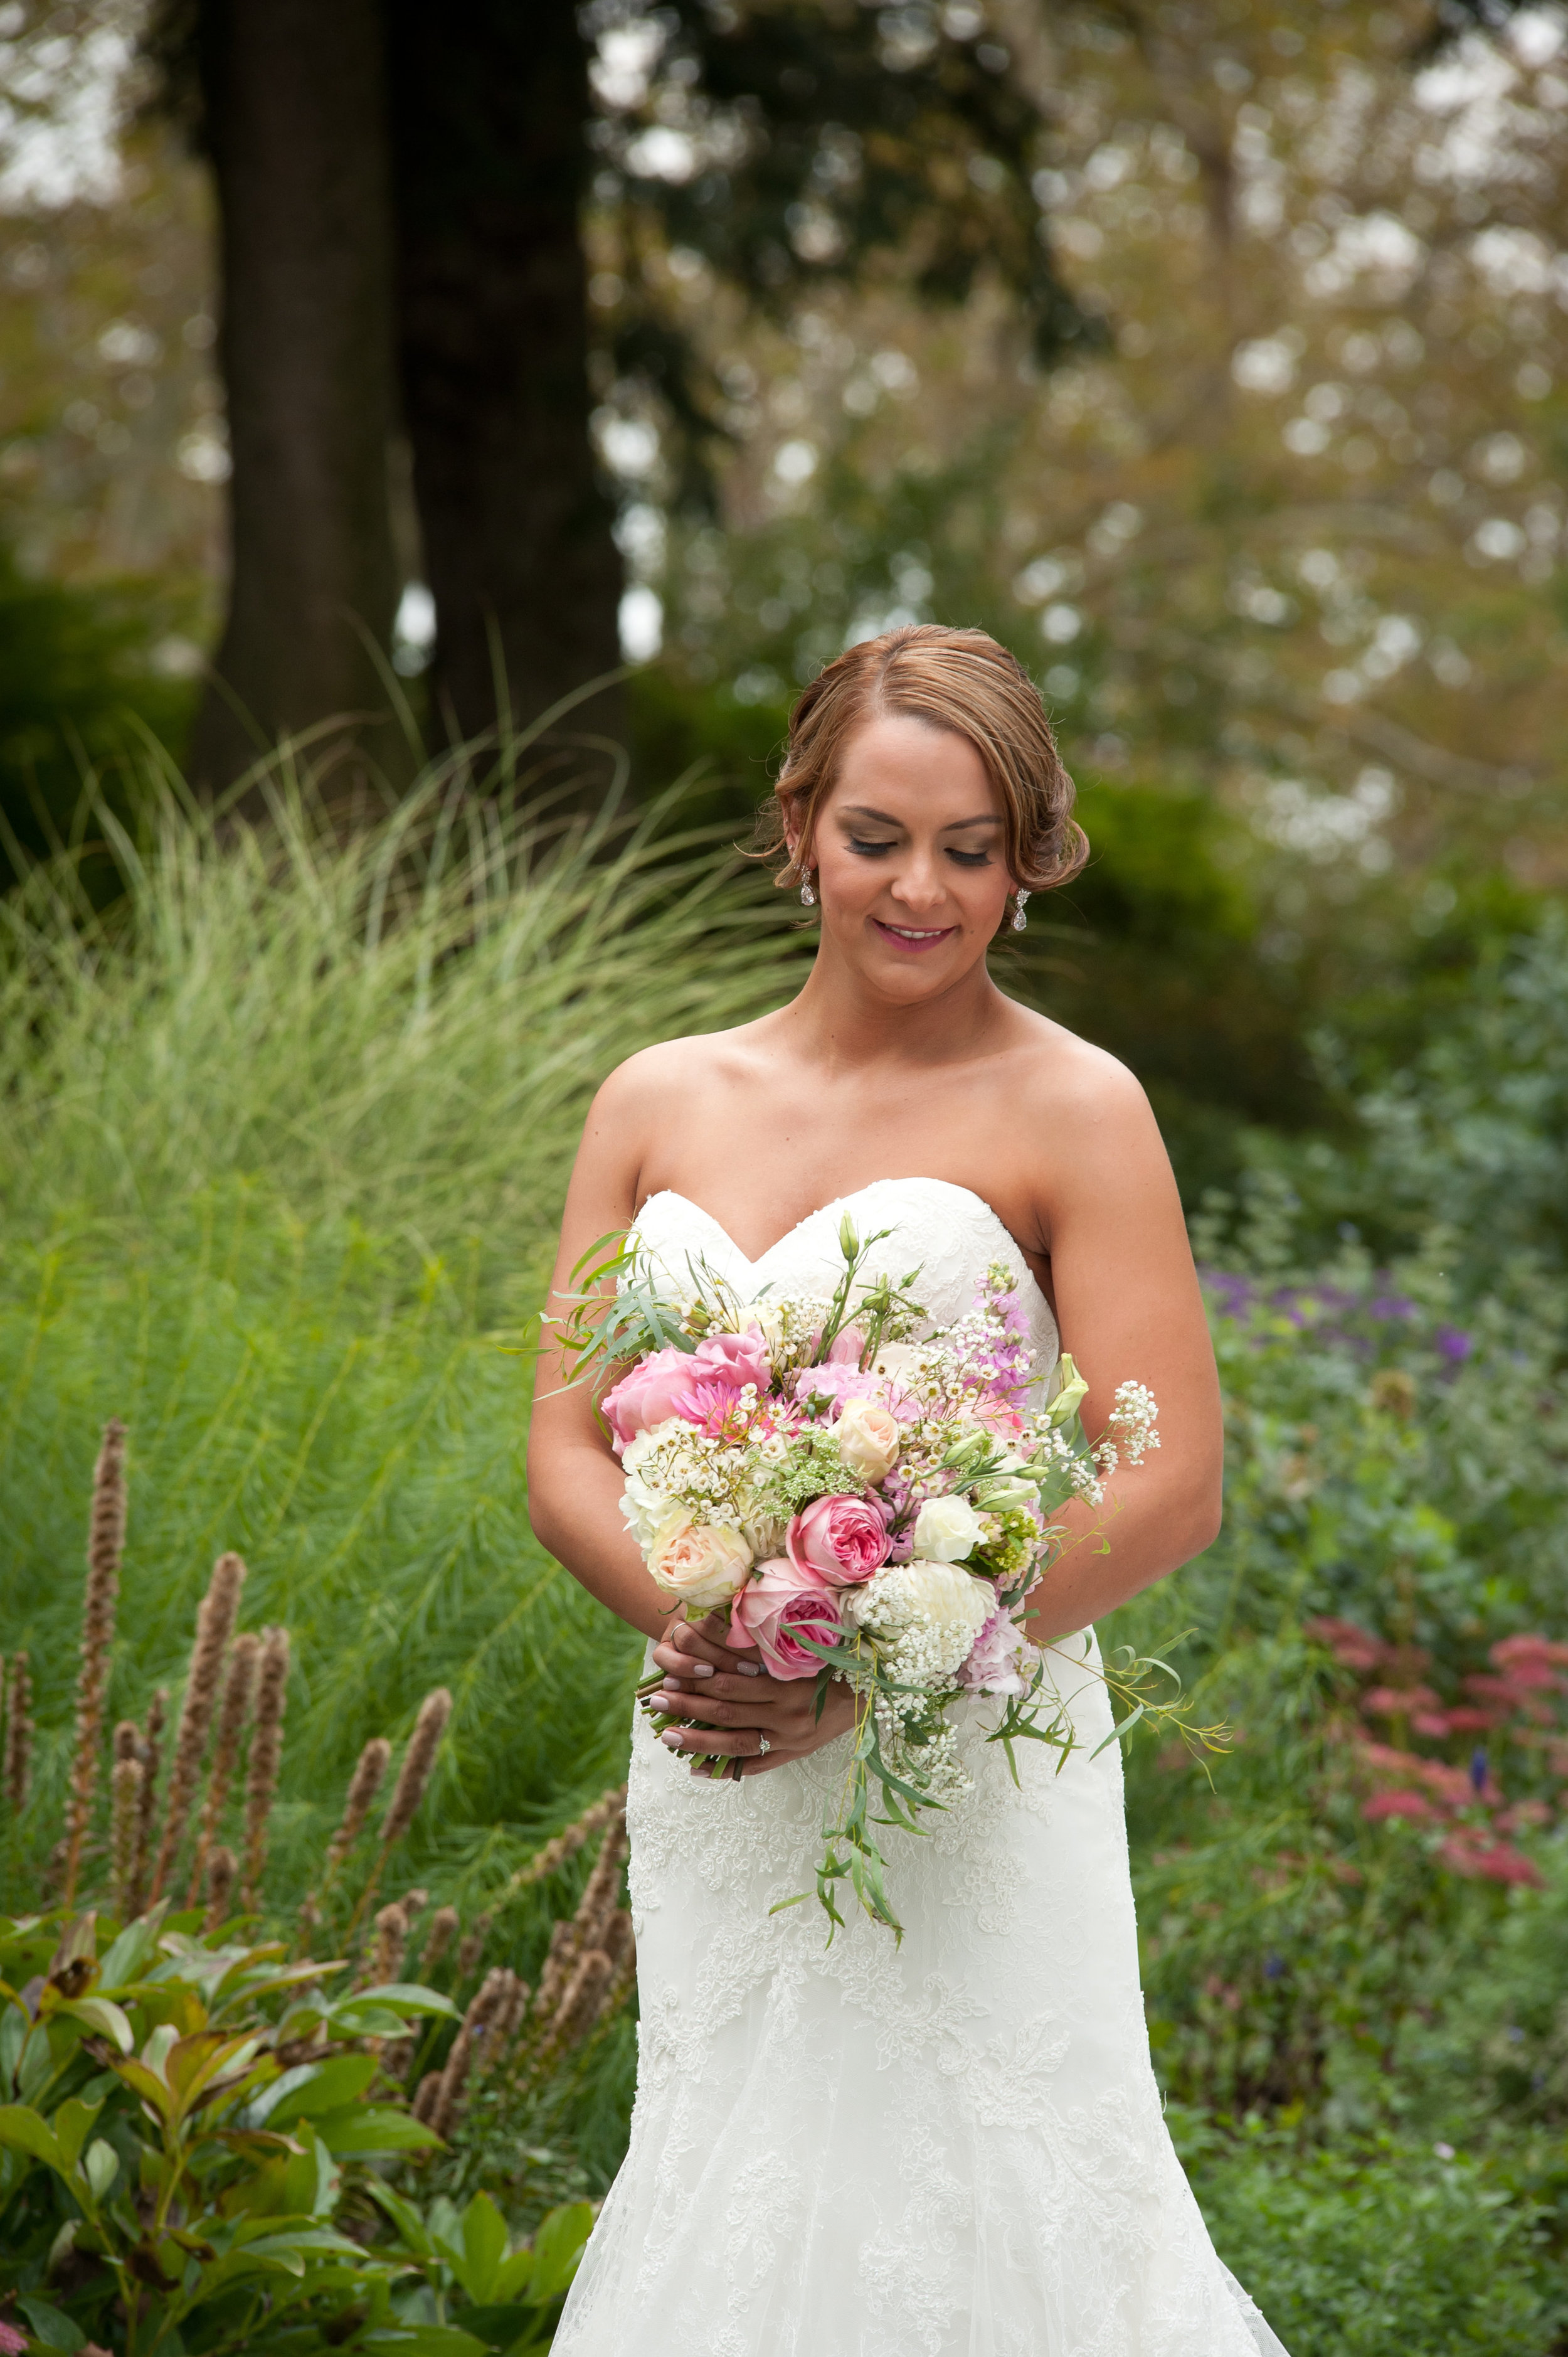 View More: http://wwwsusanroarkphotography.pass.us/brittney-rory